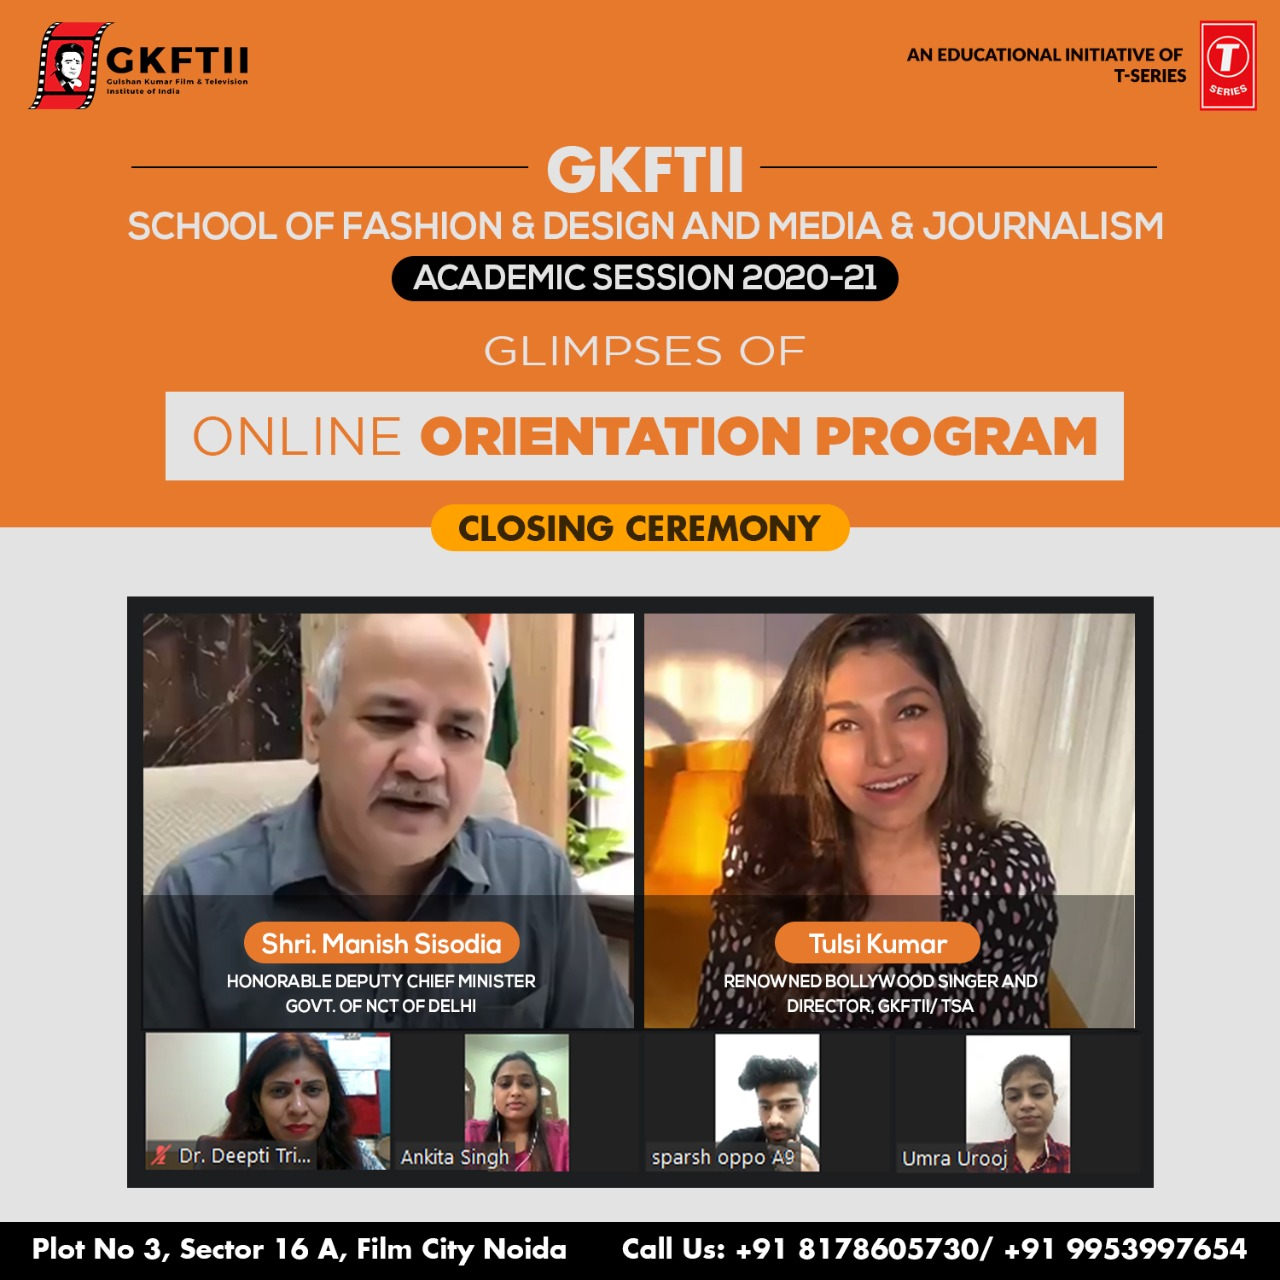 Closing Ceremony of a weeklong Online Orientation Program of Fashion & Journalism